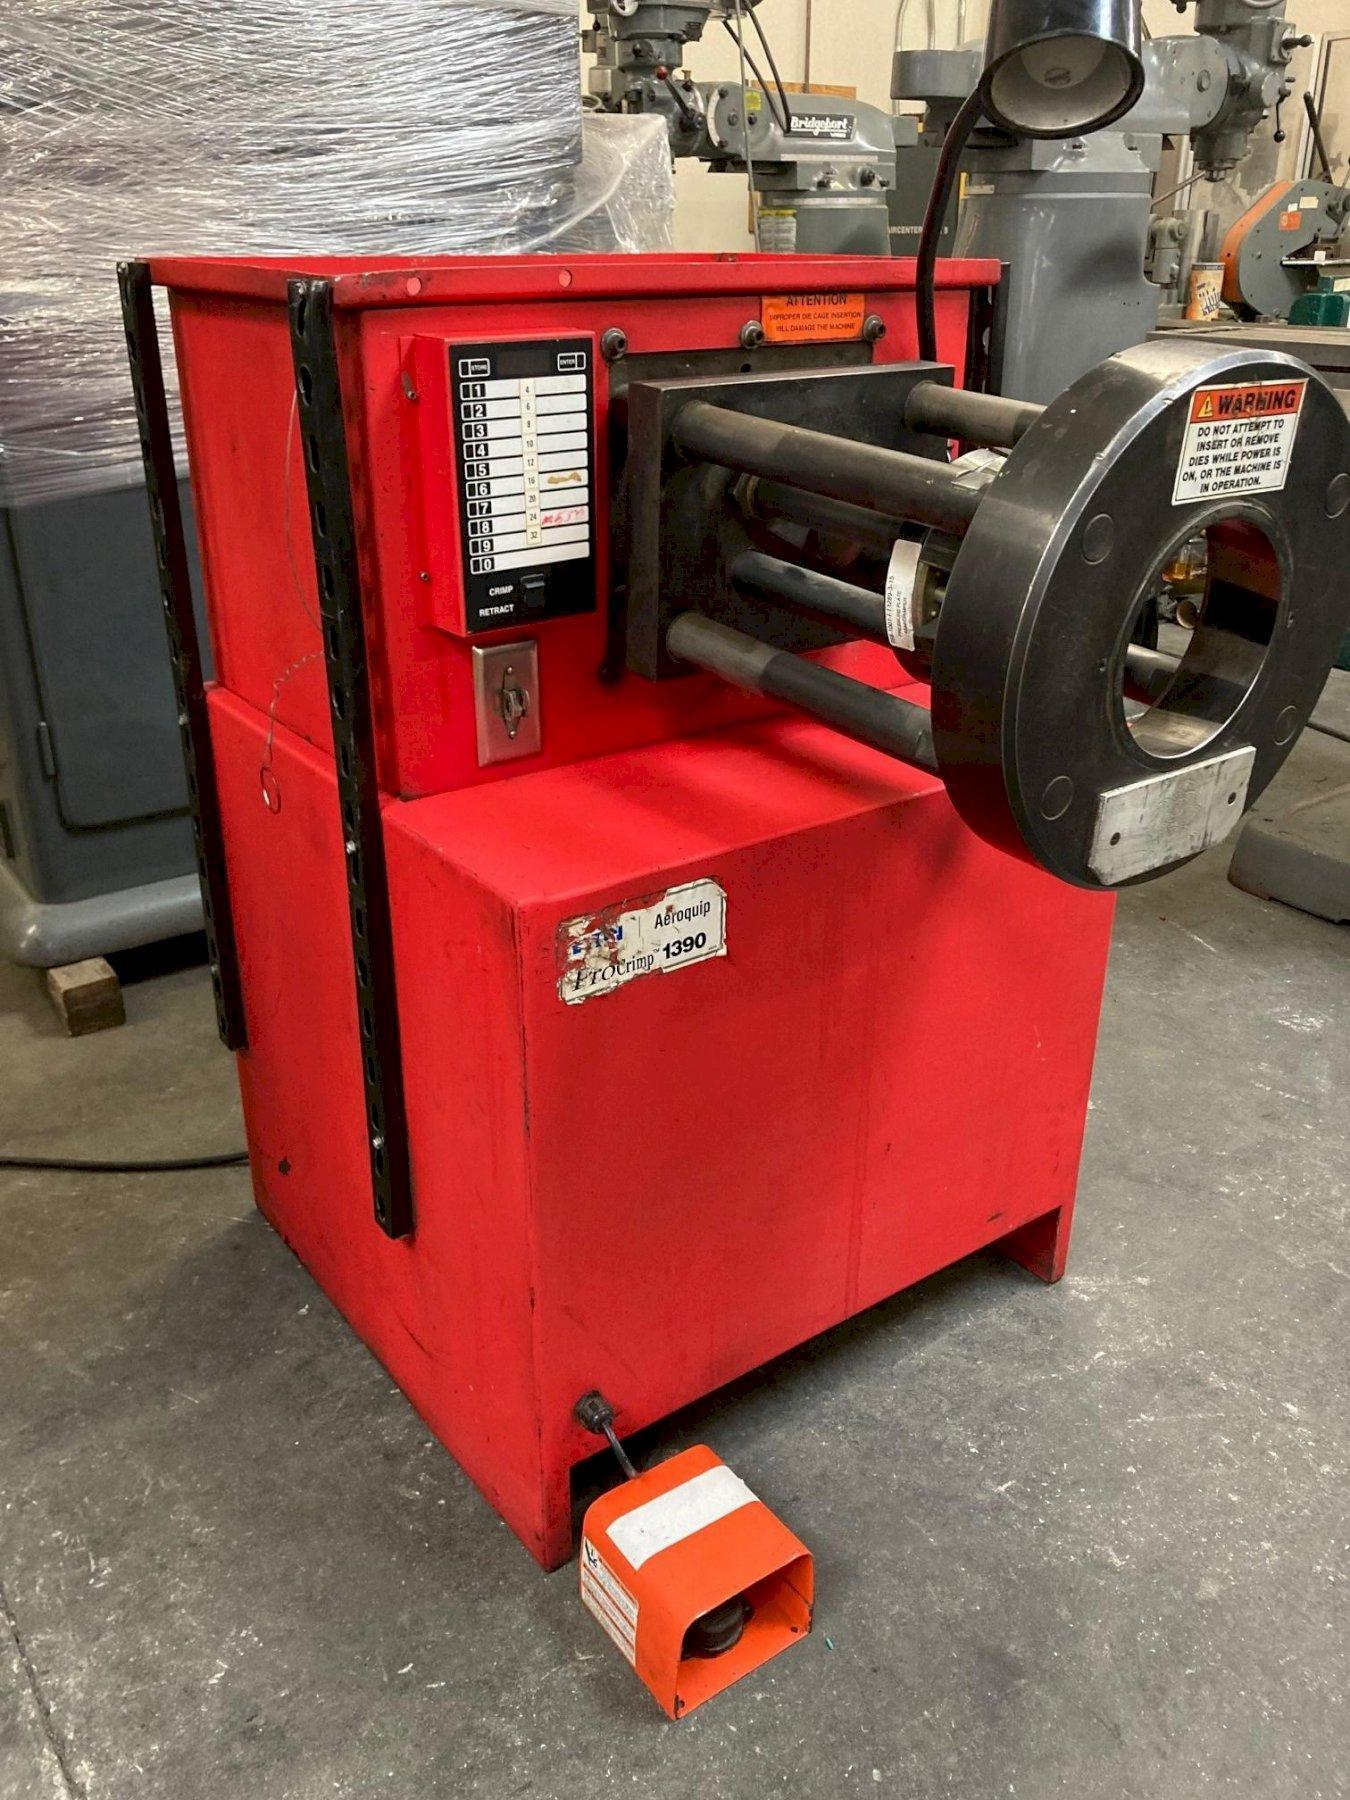 Eaton Aeroquip FT1390-115 Floor Hydraulic Hose Crimp Machine 2017 with: Electronic Programmable Keypad, 10 Crimp Diameter Presets, 2-Piece Master Die Cage, and Dies.